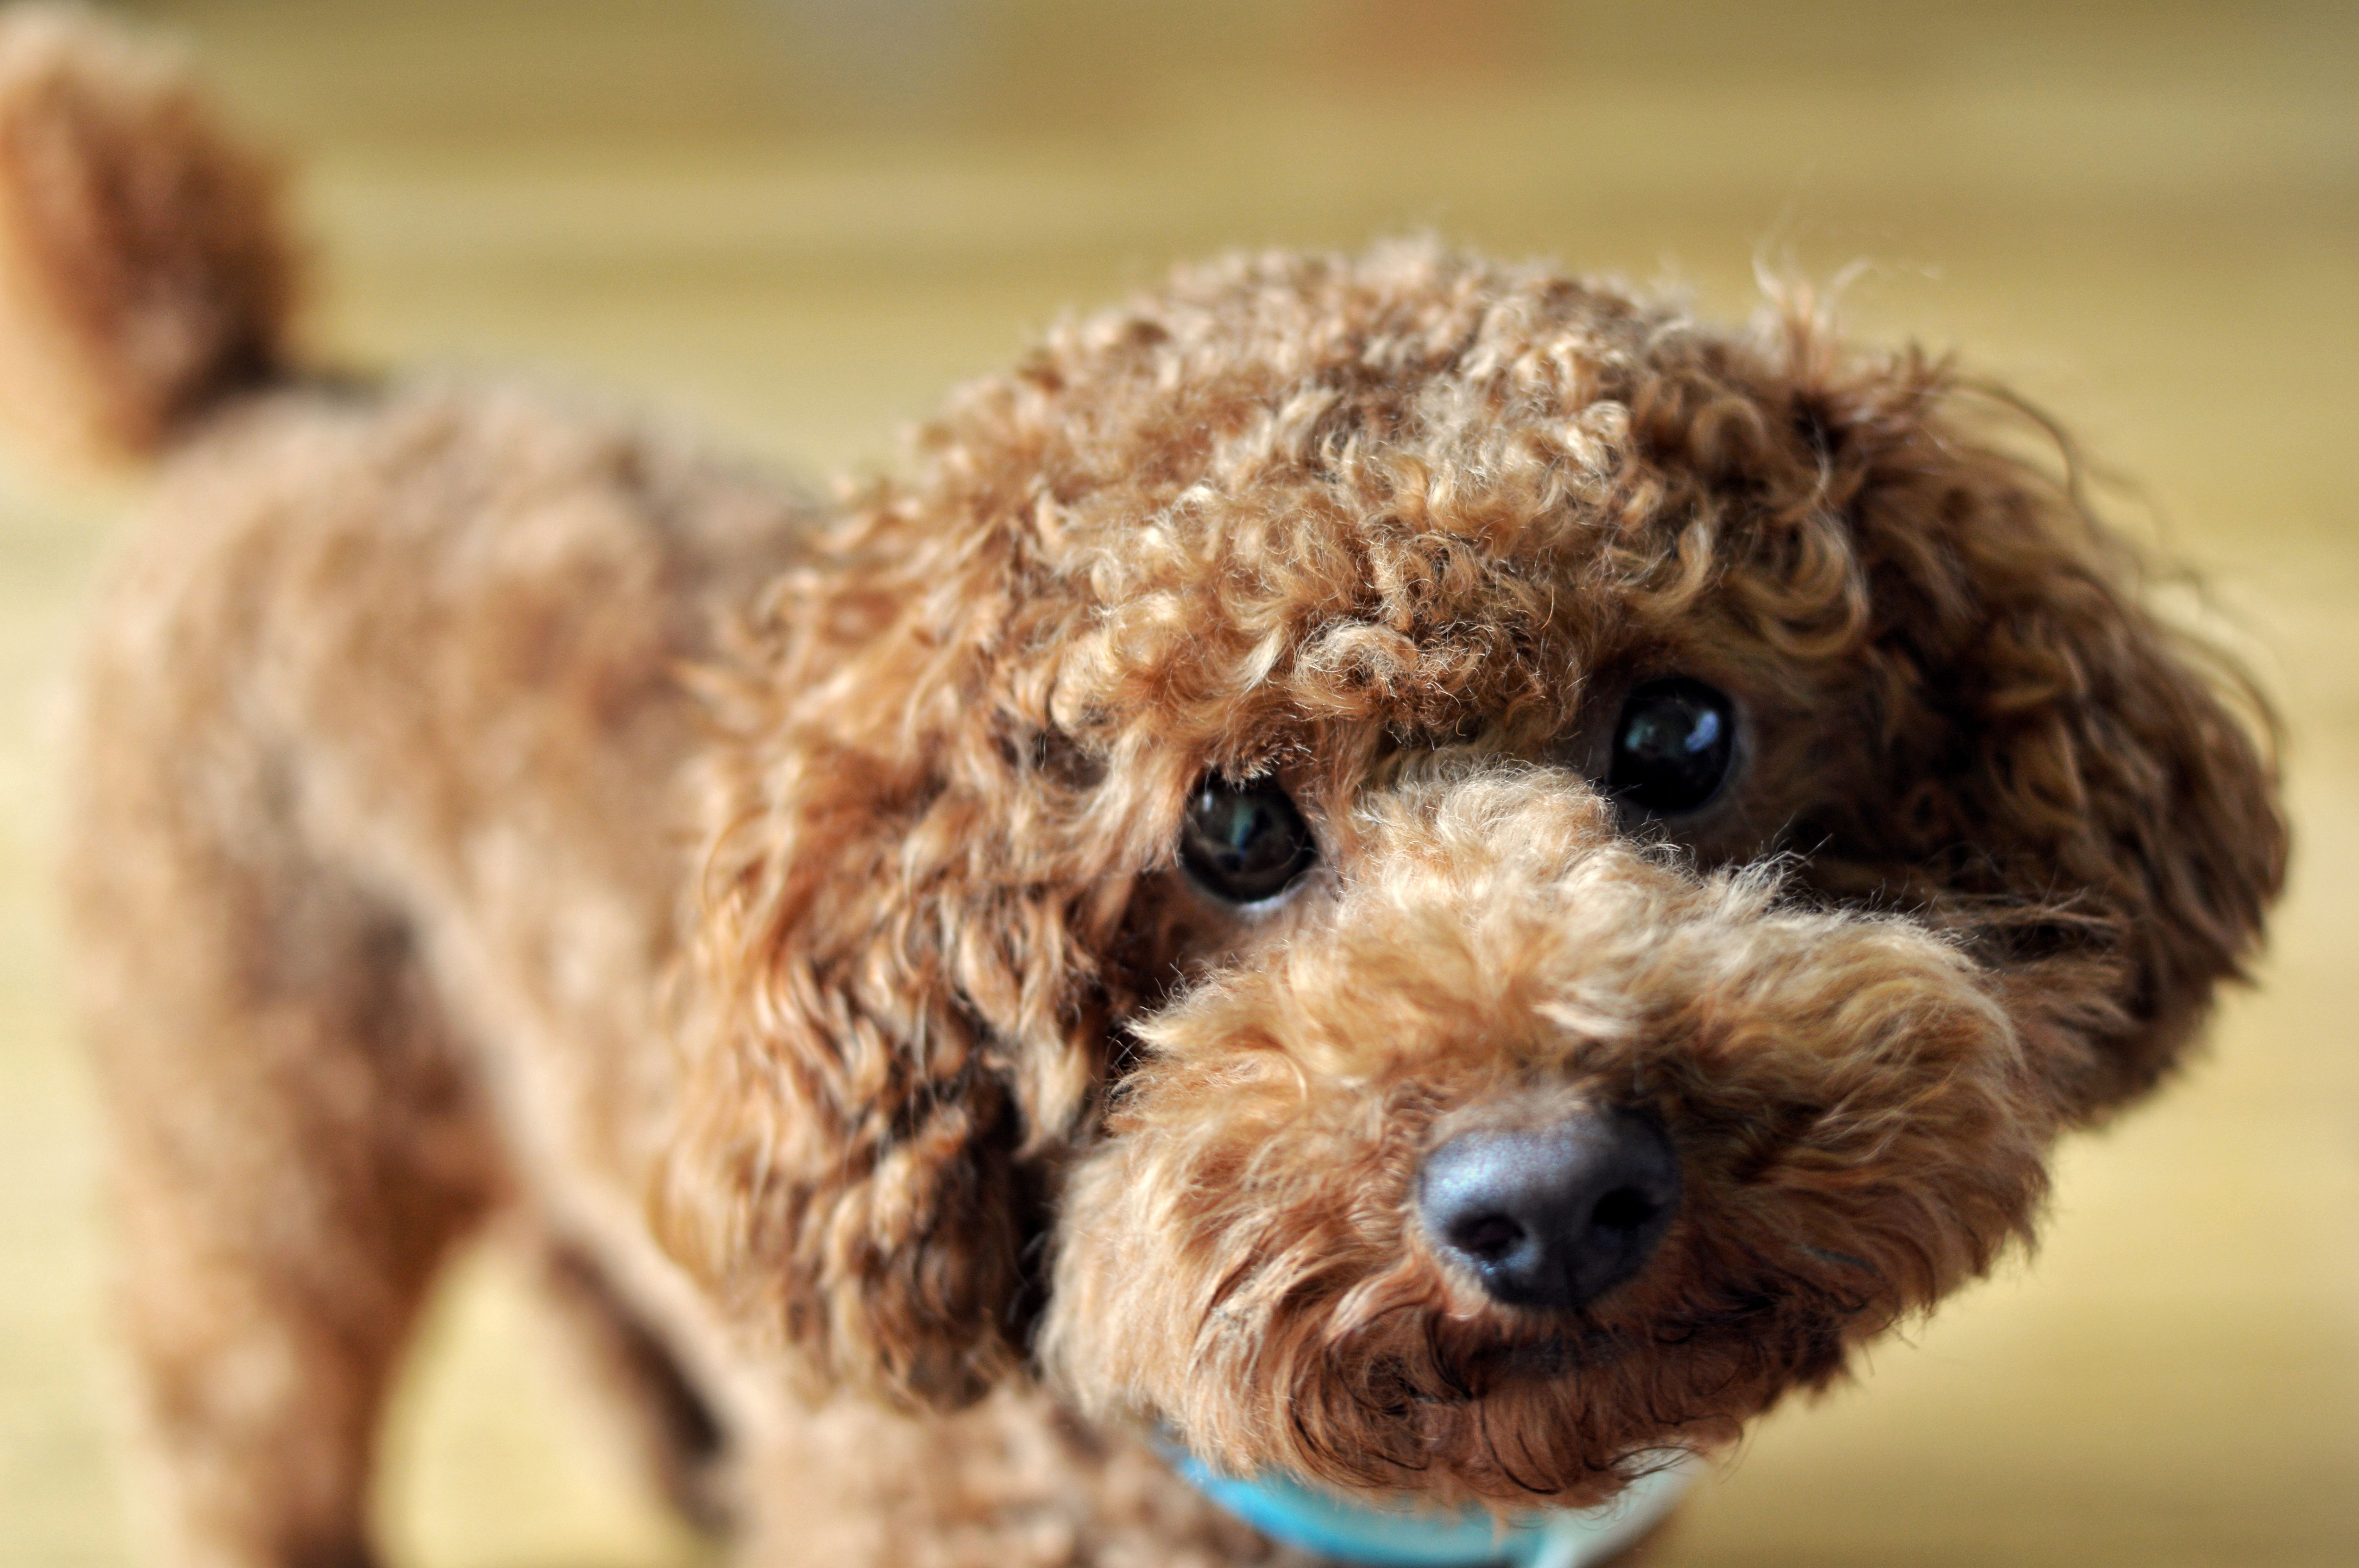 Close-up of toy Poodle